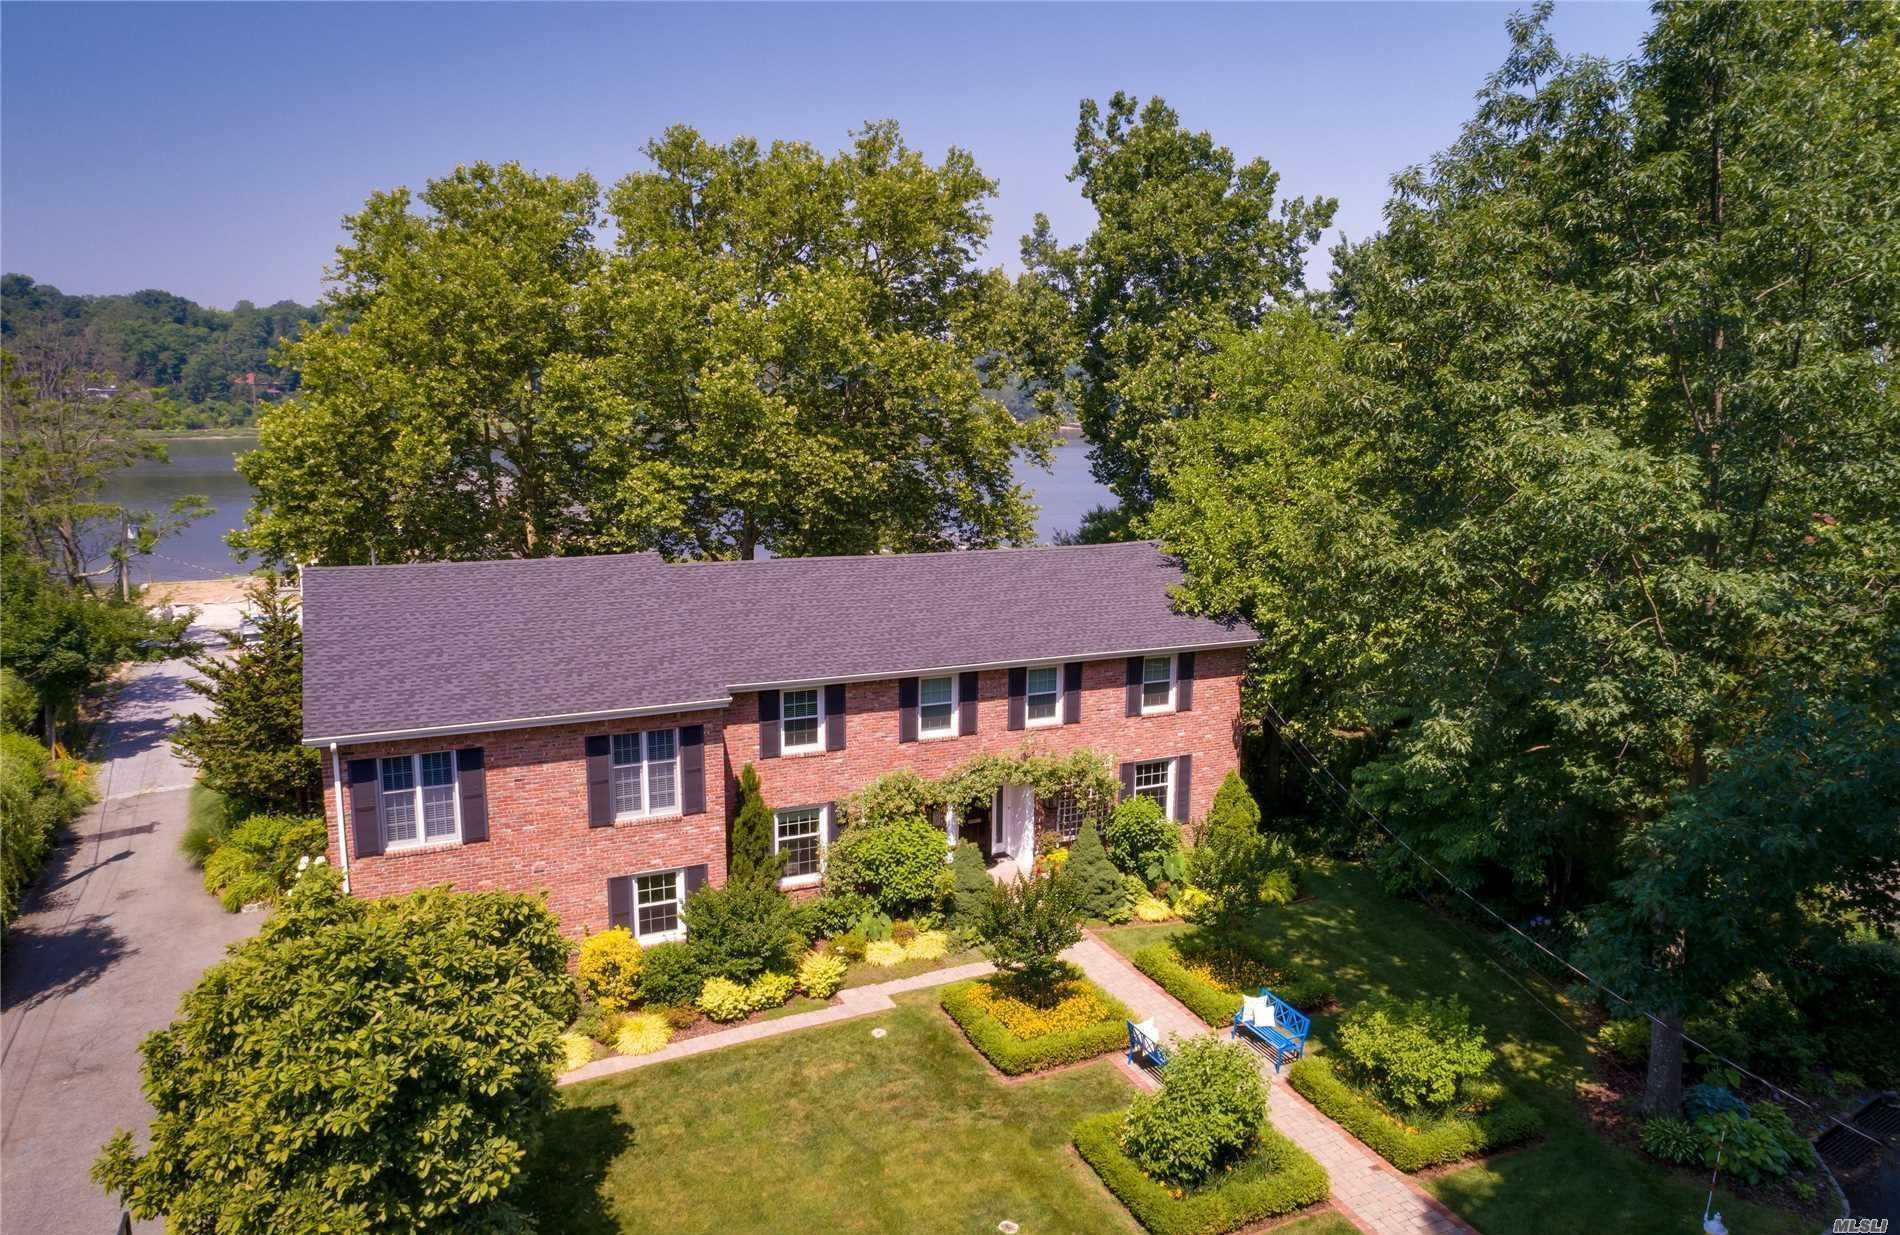 Manhasset Bay Waterview Lovely 5 Bedroom Brick Colonial. Enjoy This Tranquil Setting. Well Appointed Rooms Throughout. Bonus-2nd Floor Bedroom Suite Featuring Br, Lr, Full Bath, Walk In Closet And Private Staircase. Wonderful Landscaped Property. Deeded Water Rights.